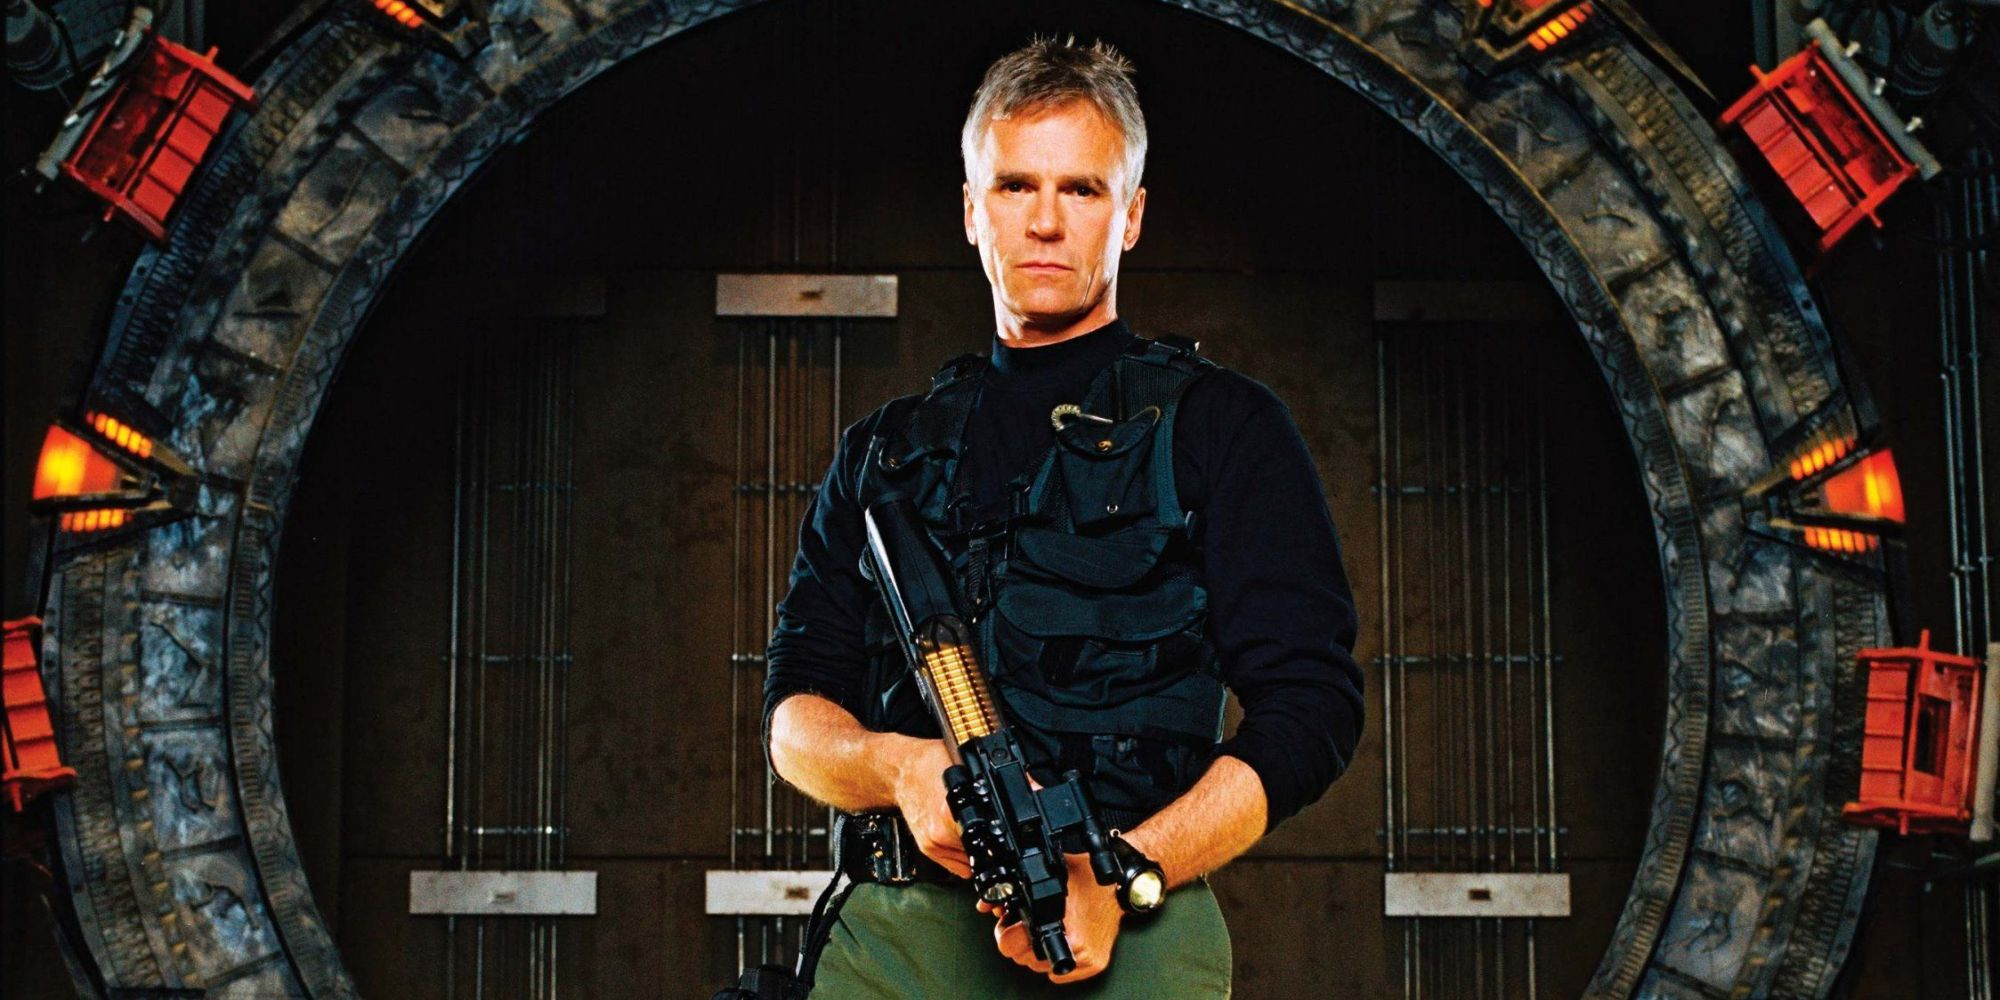 Richard Dean Anderson: Why You Haven't Seen Him Since 2013